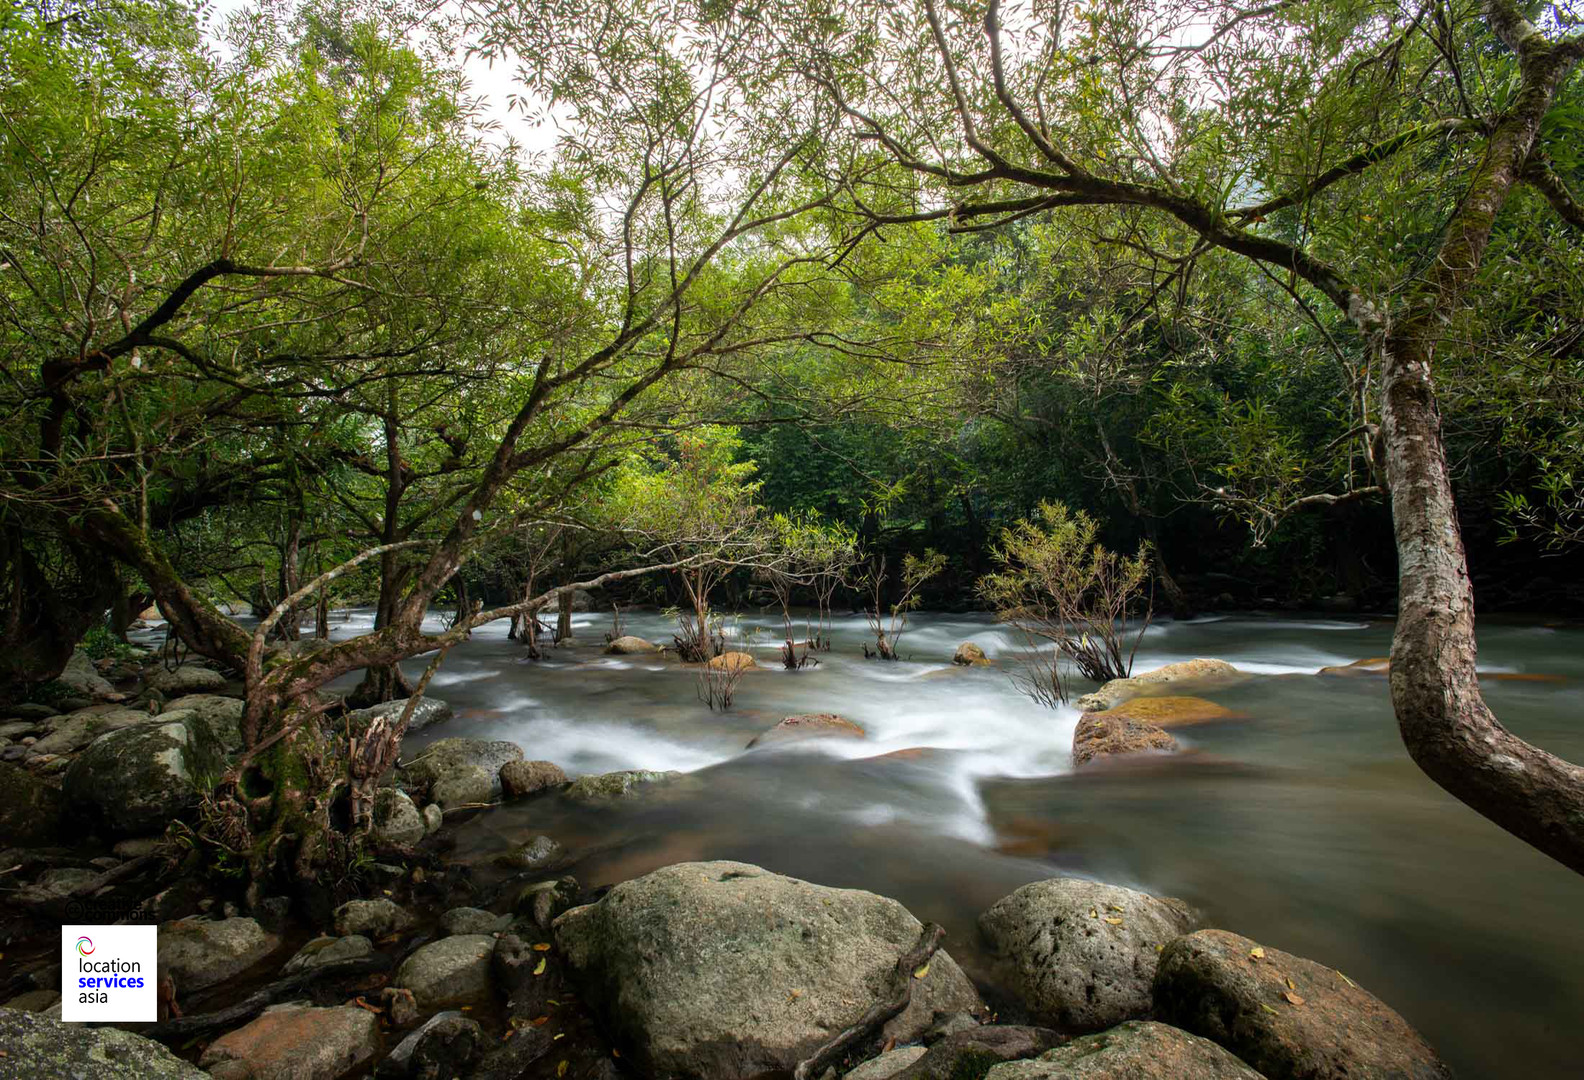 thailand film locations waterfalls e.jpg